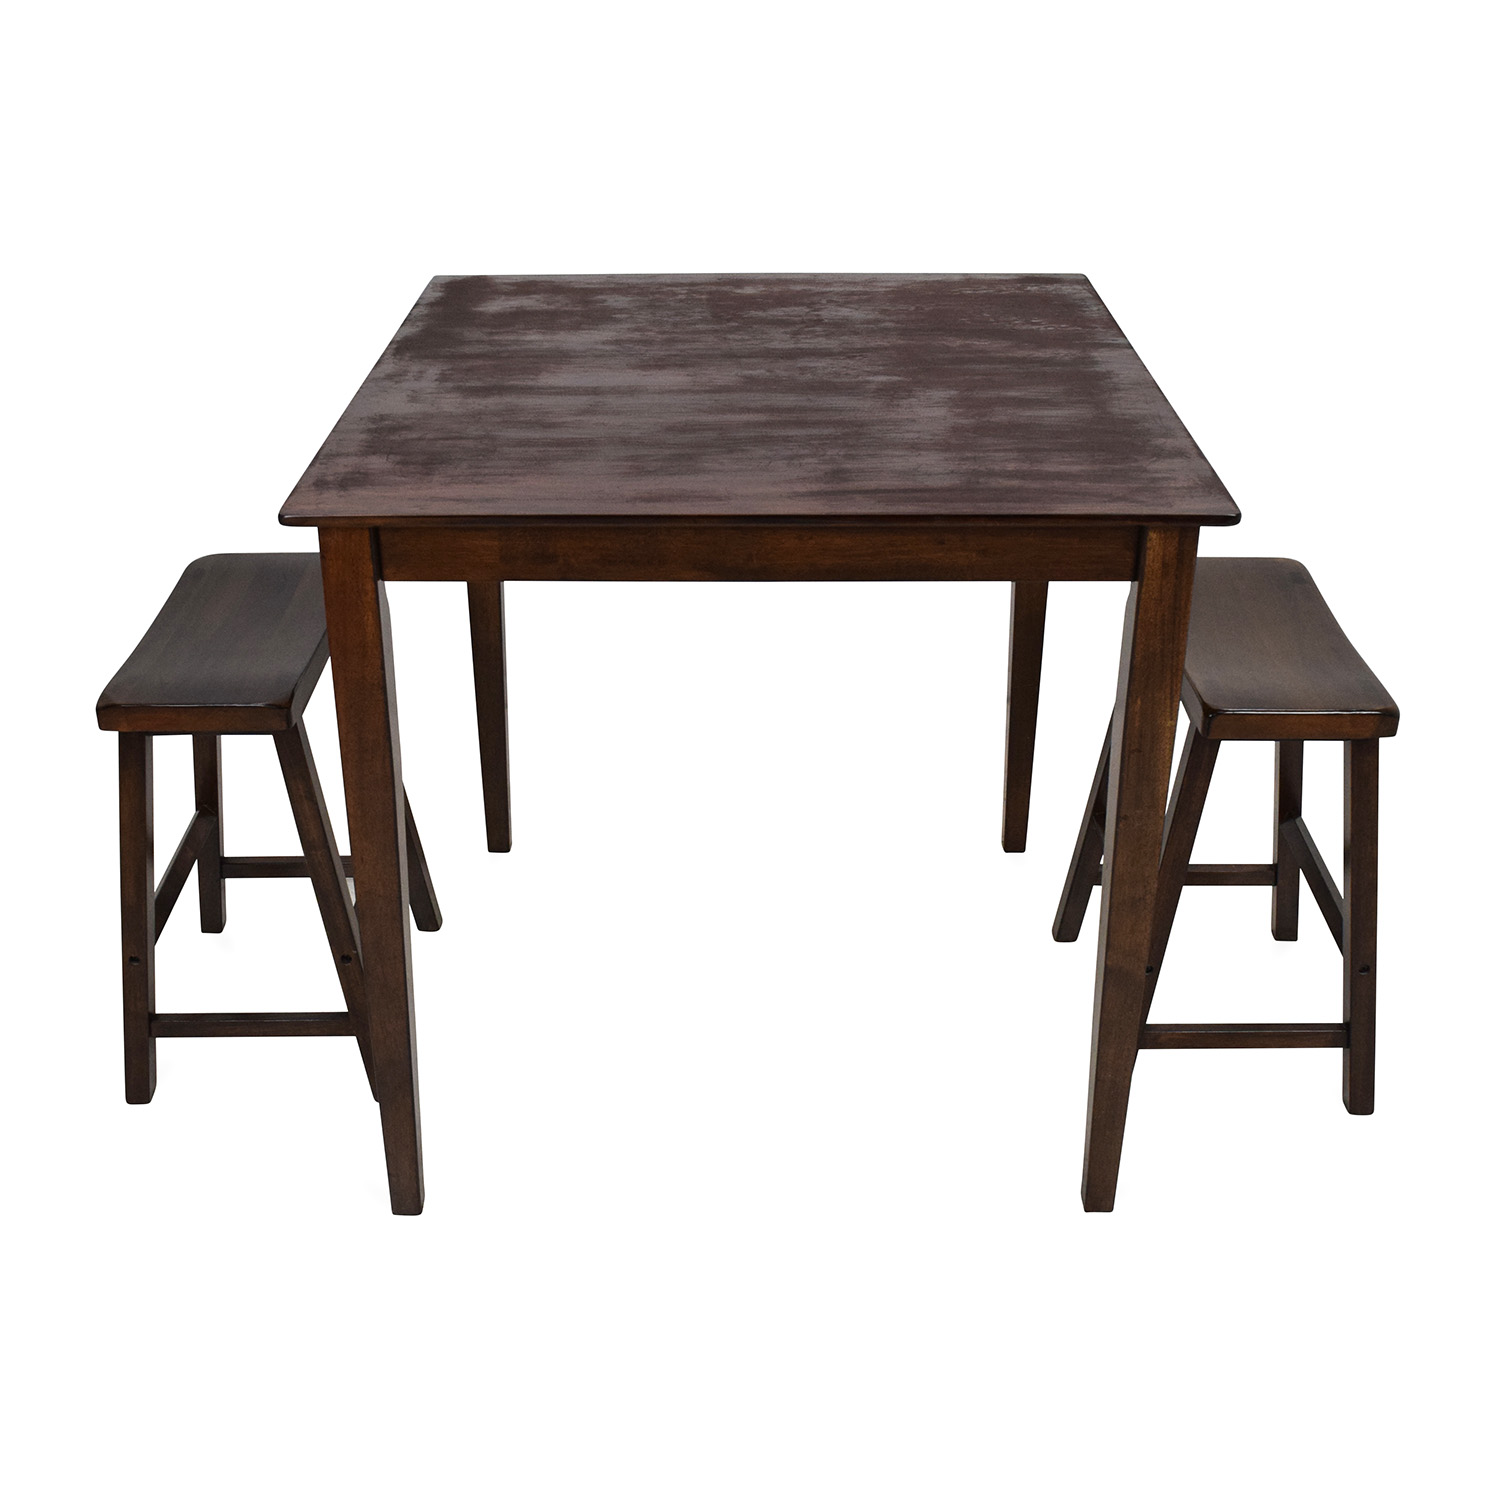 75% OFF Tall Extendable Dining Room Table Set Tables